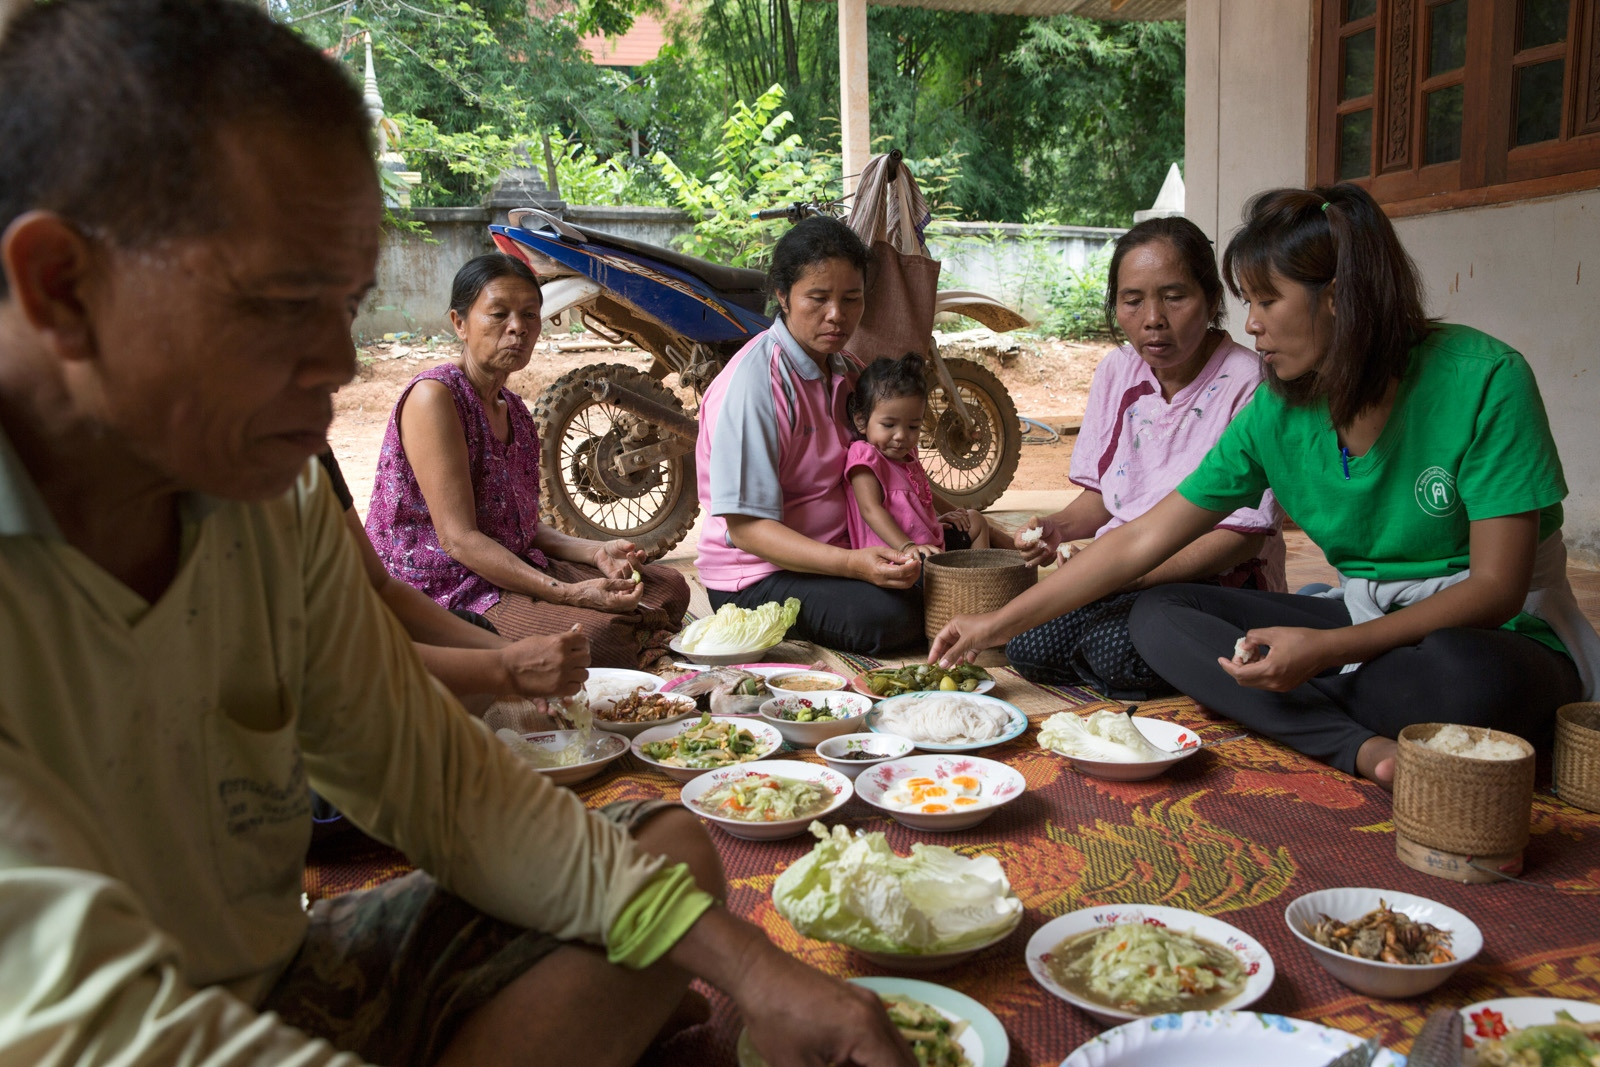 Core members of the Khon Rak Ban Kerd environmental group eat together after a court appearance in the Provincial capital Loei.